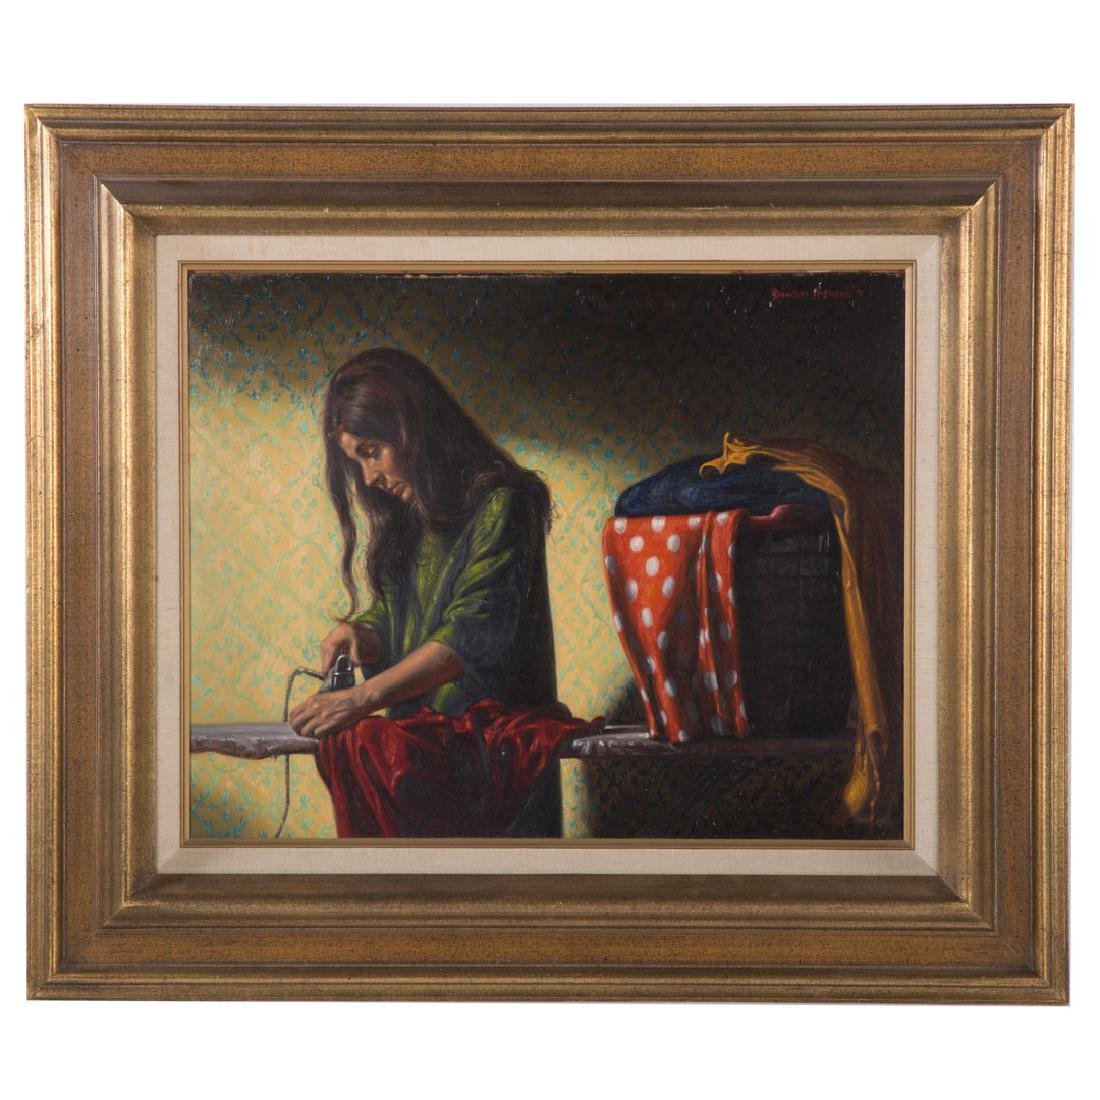 Douglas Hofmann. Woman Ironing, oil on board